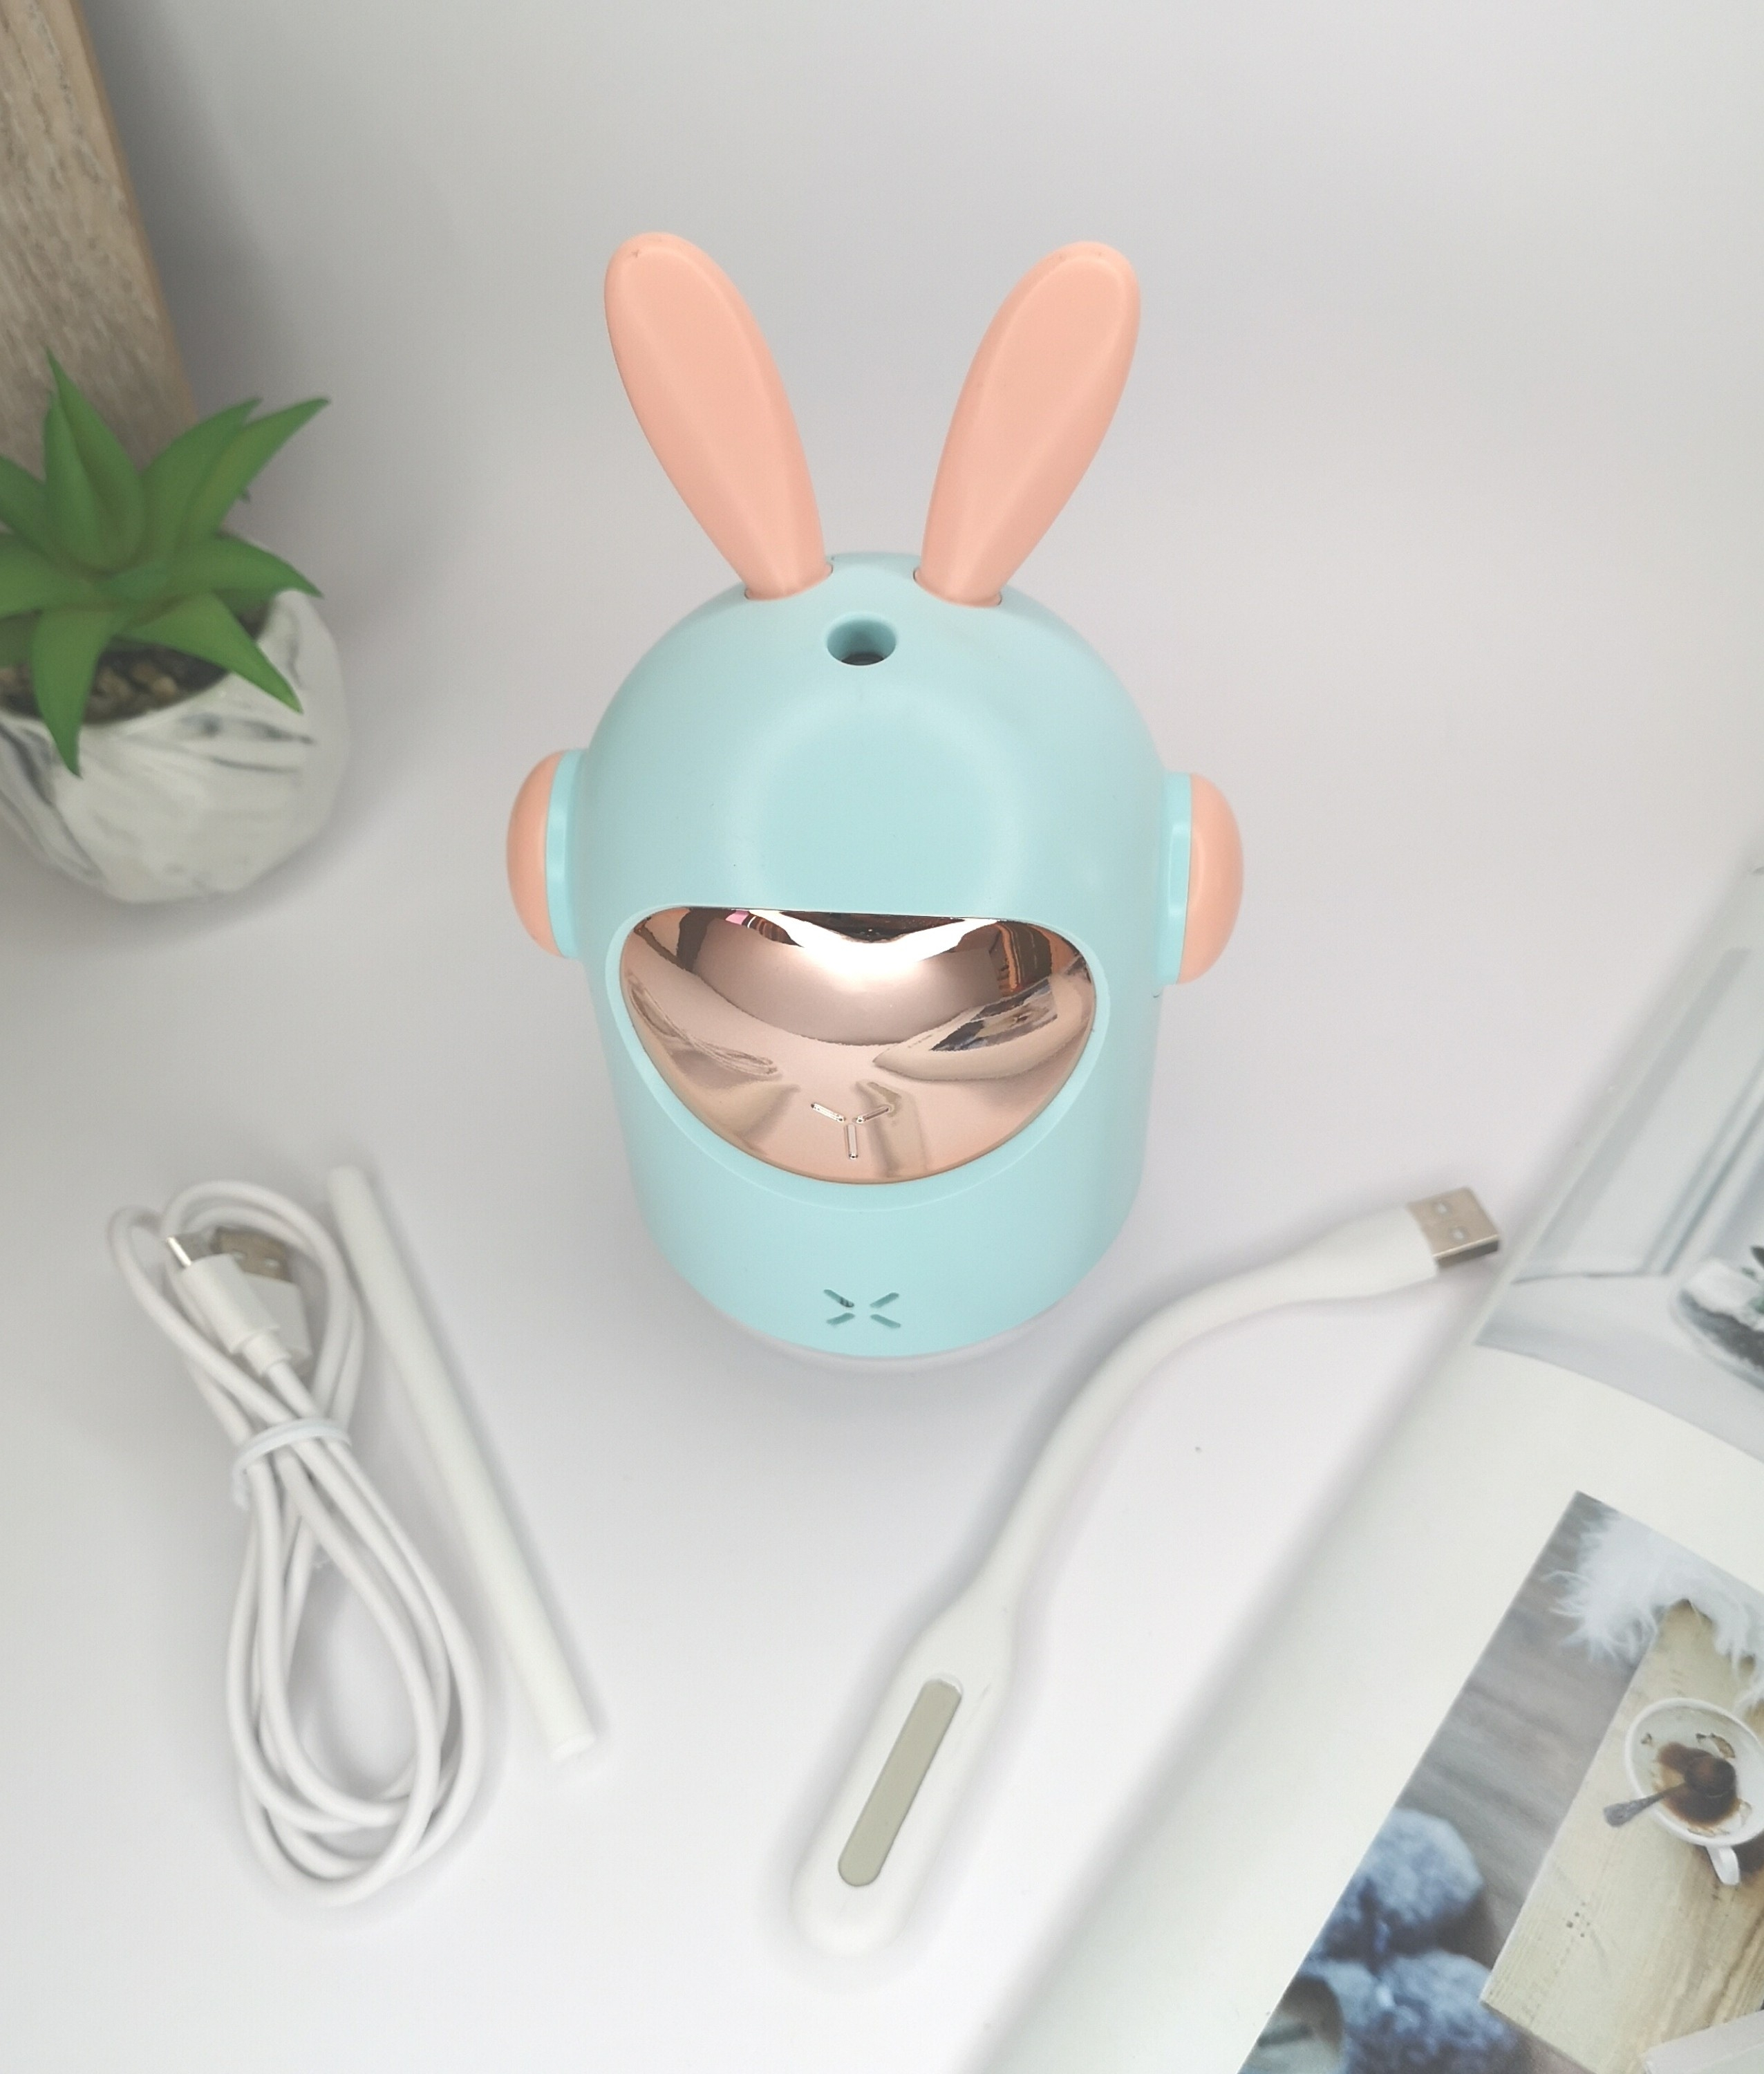 Humificador space rabbit - blue